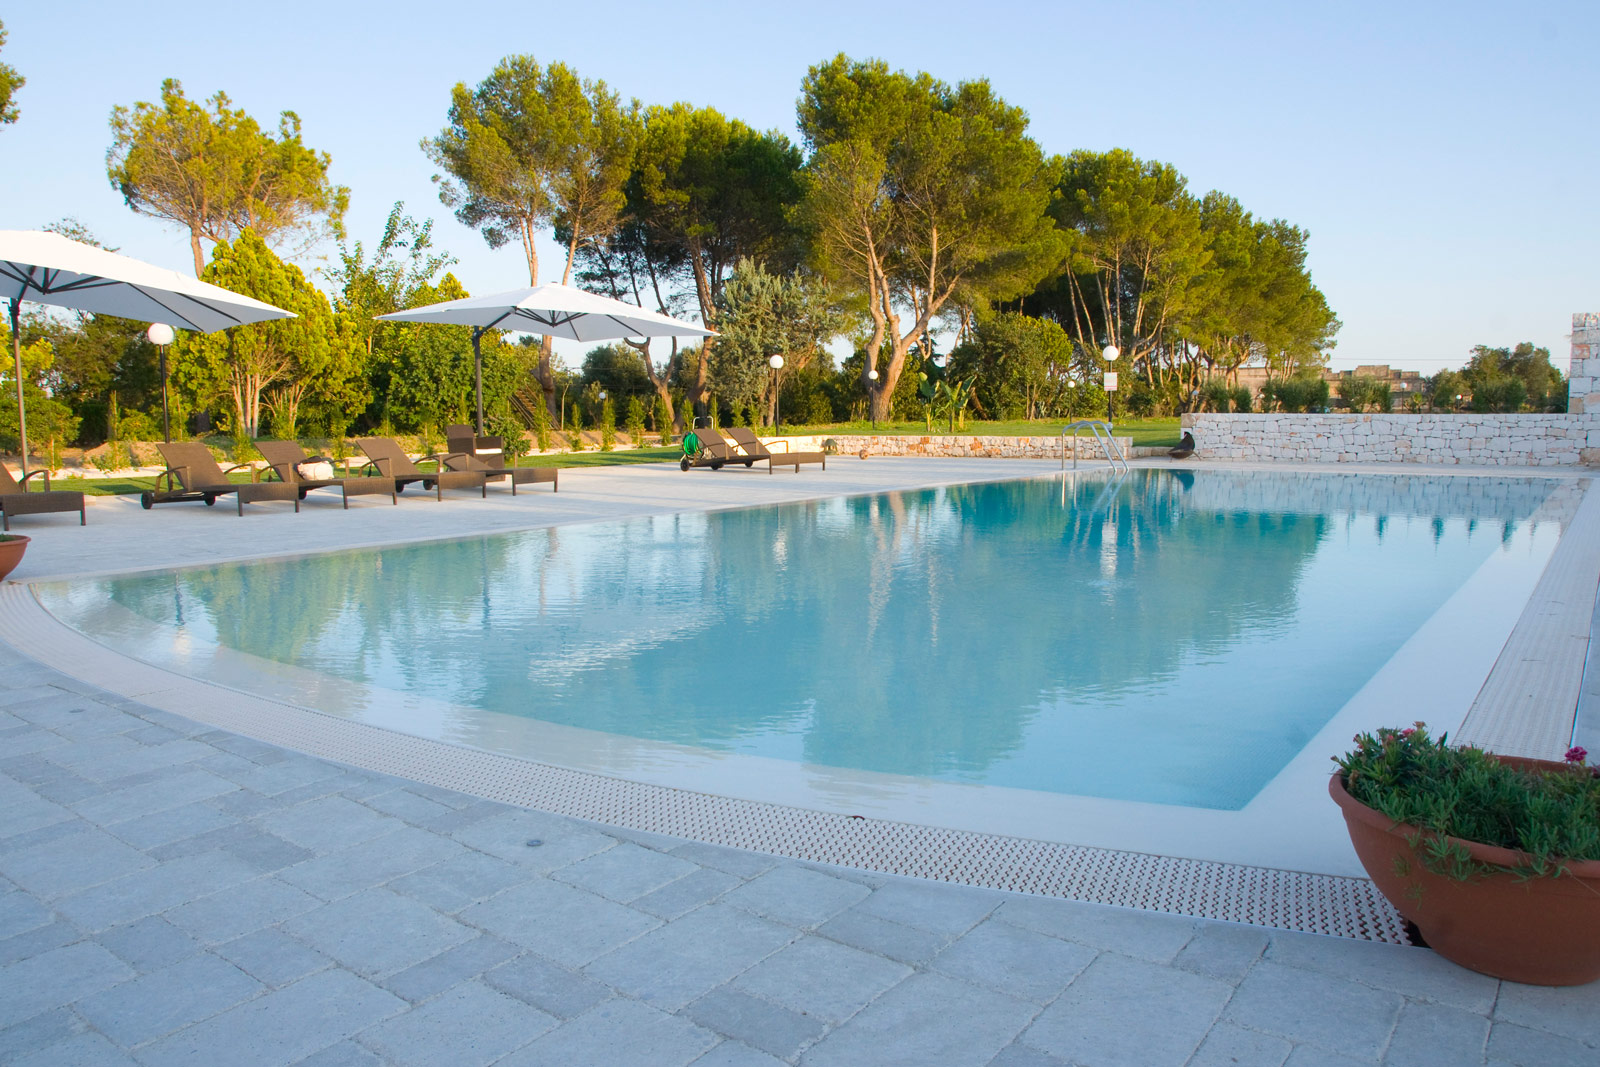 Casalpineto-piscina-